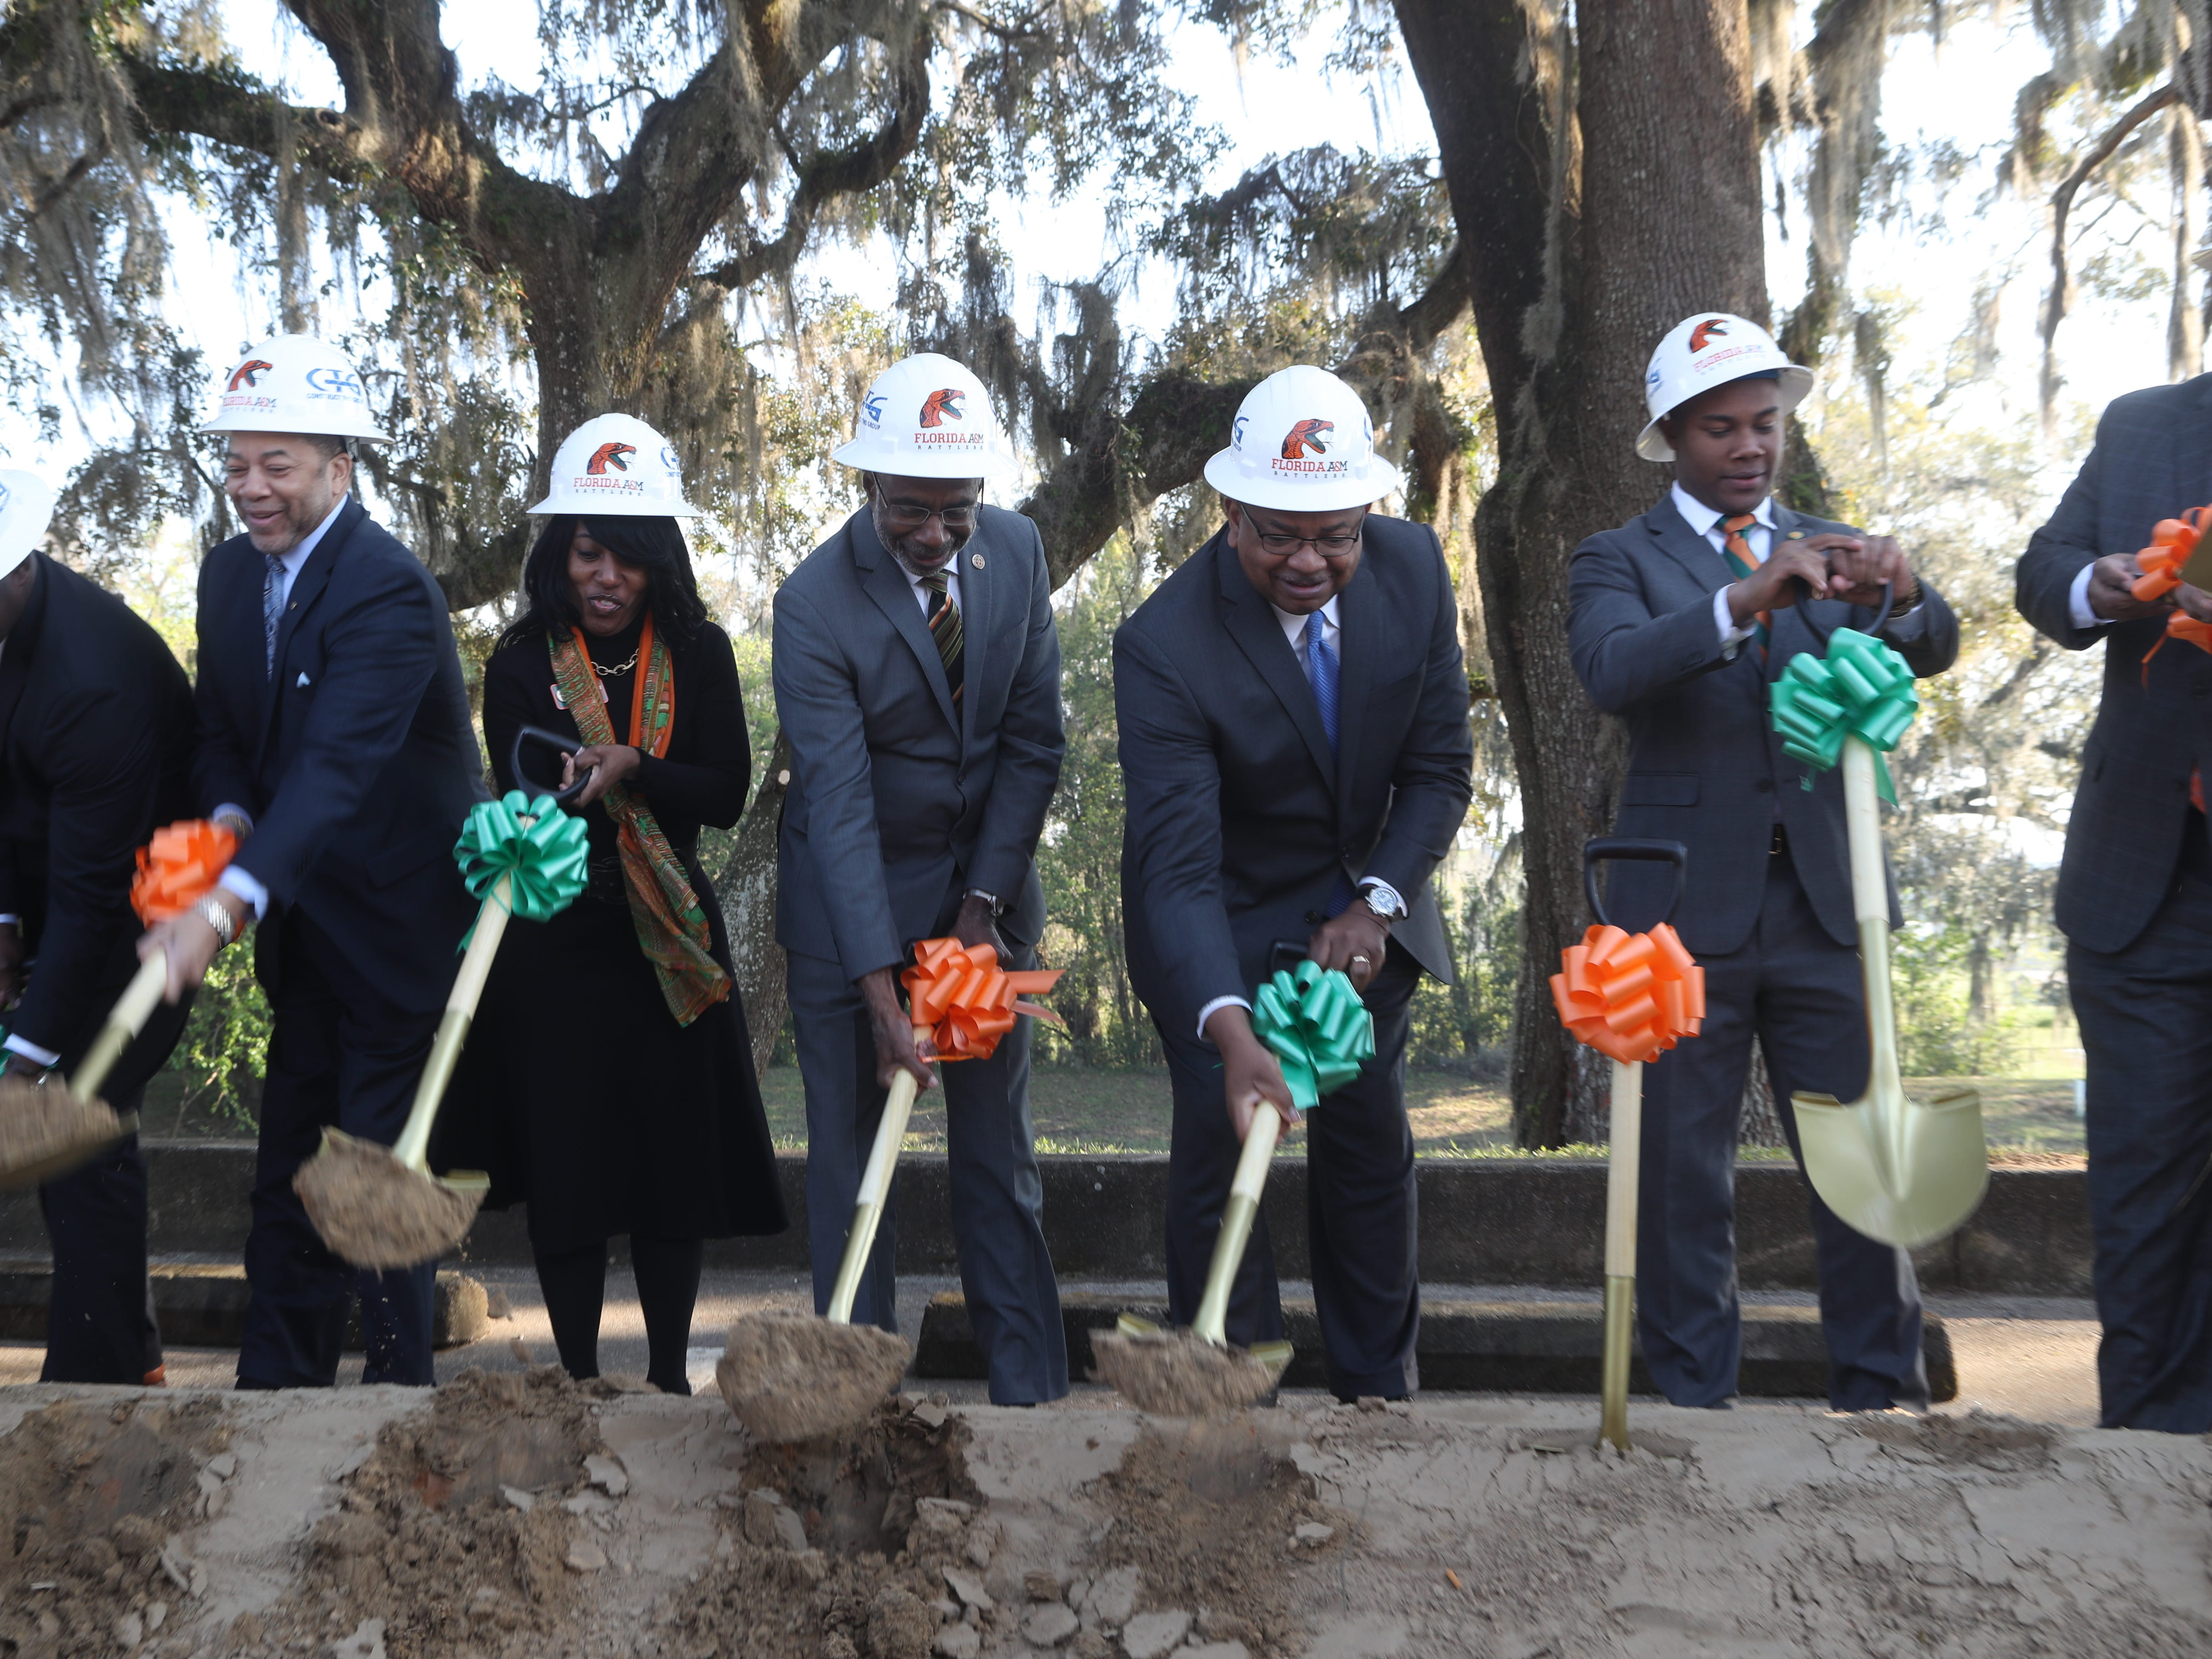 Ceremonial groundbreaking participants dig in during a groundbreaking celebration for a new residence hall on the Florida A&M campus.